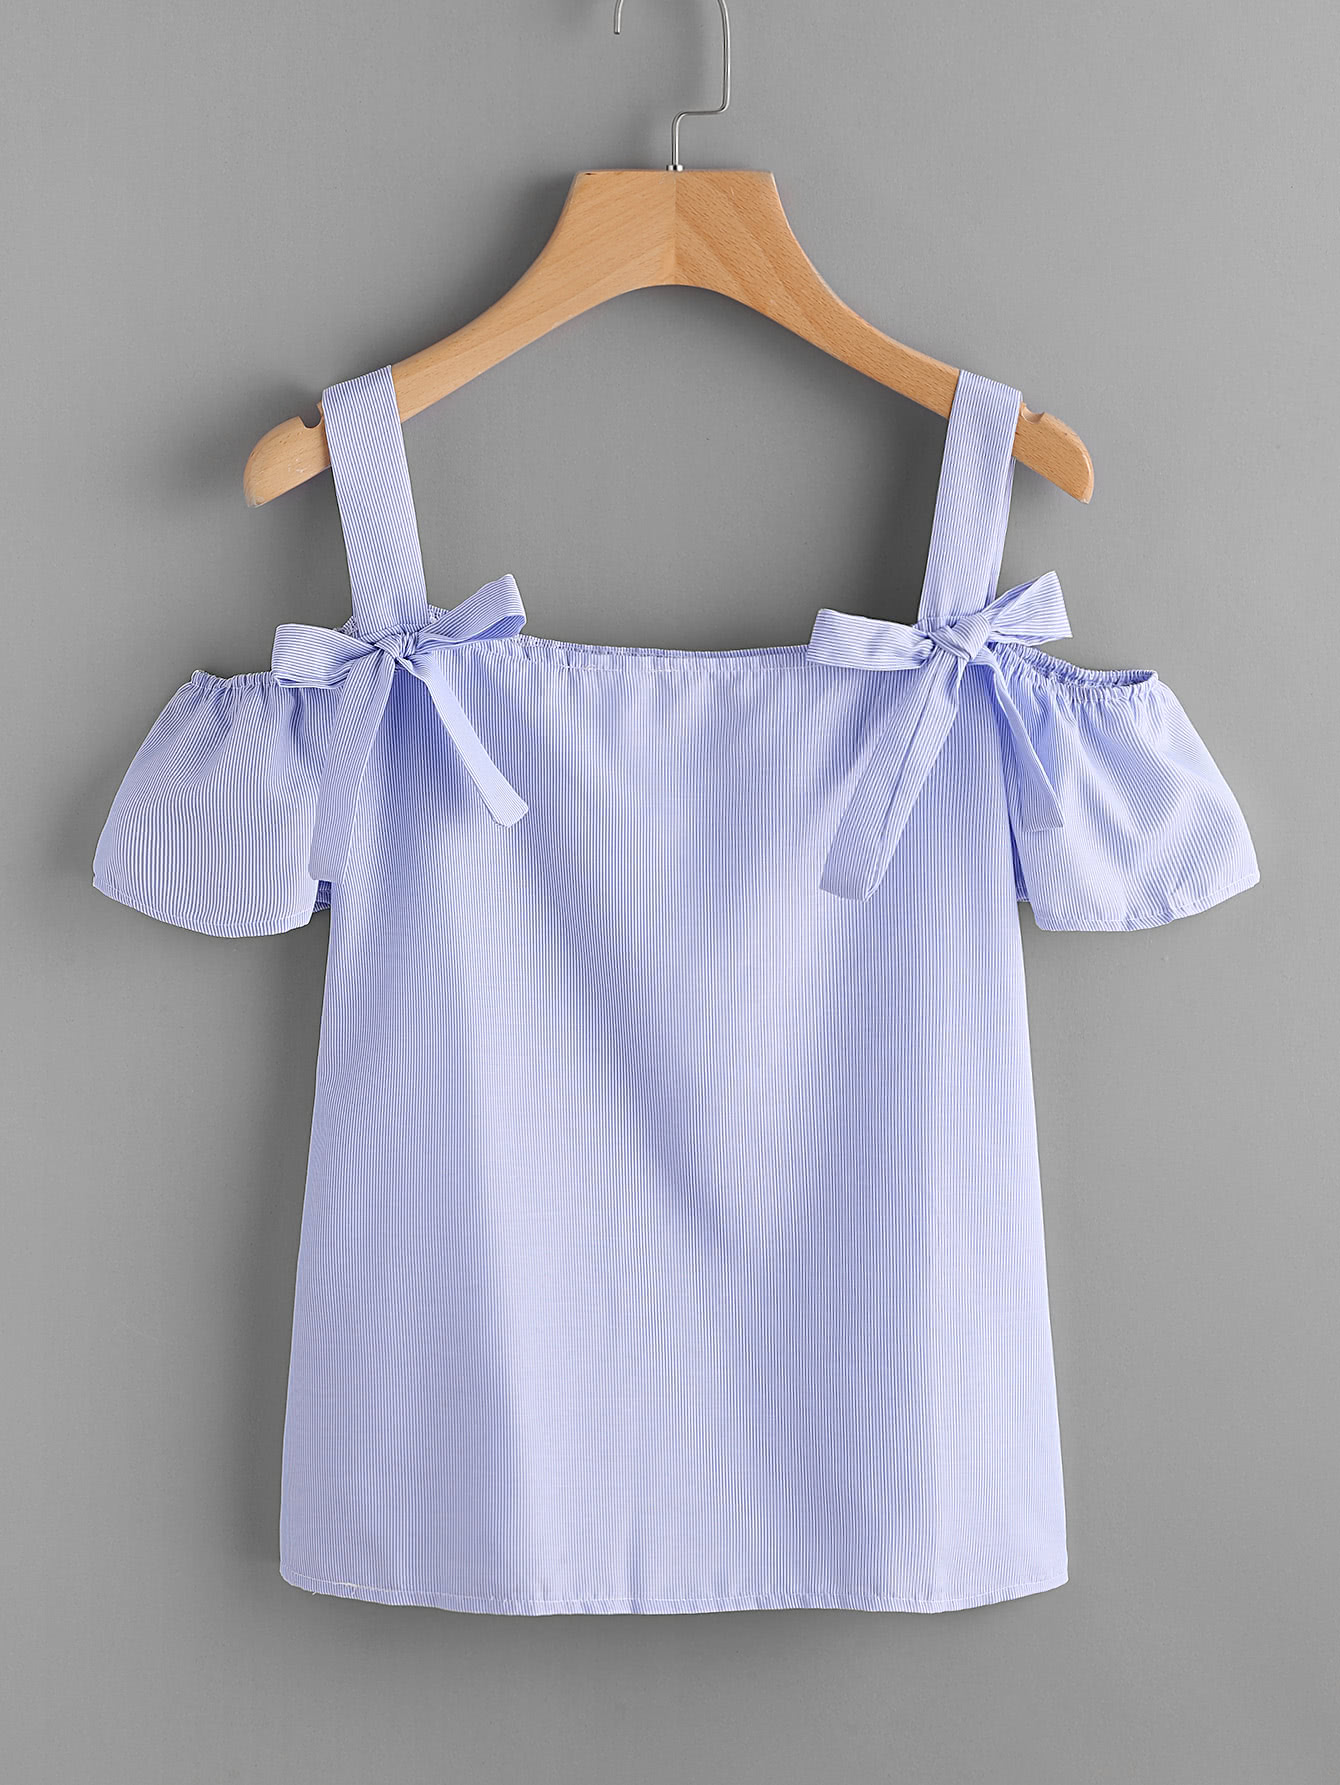 Pinstriped Bow Tie Detail Top allover florals bow tie detail frill top with shorts